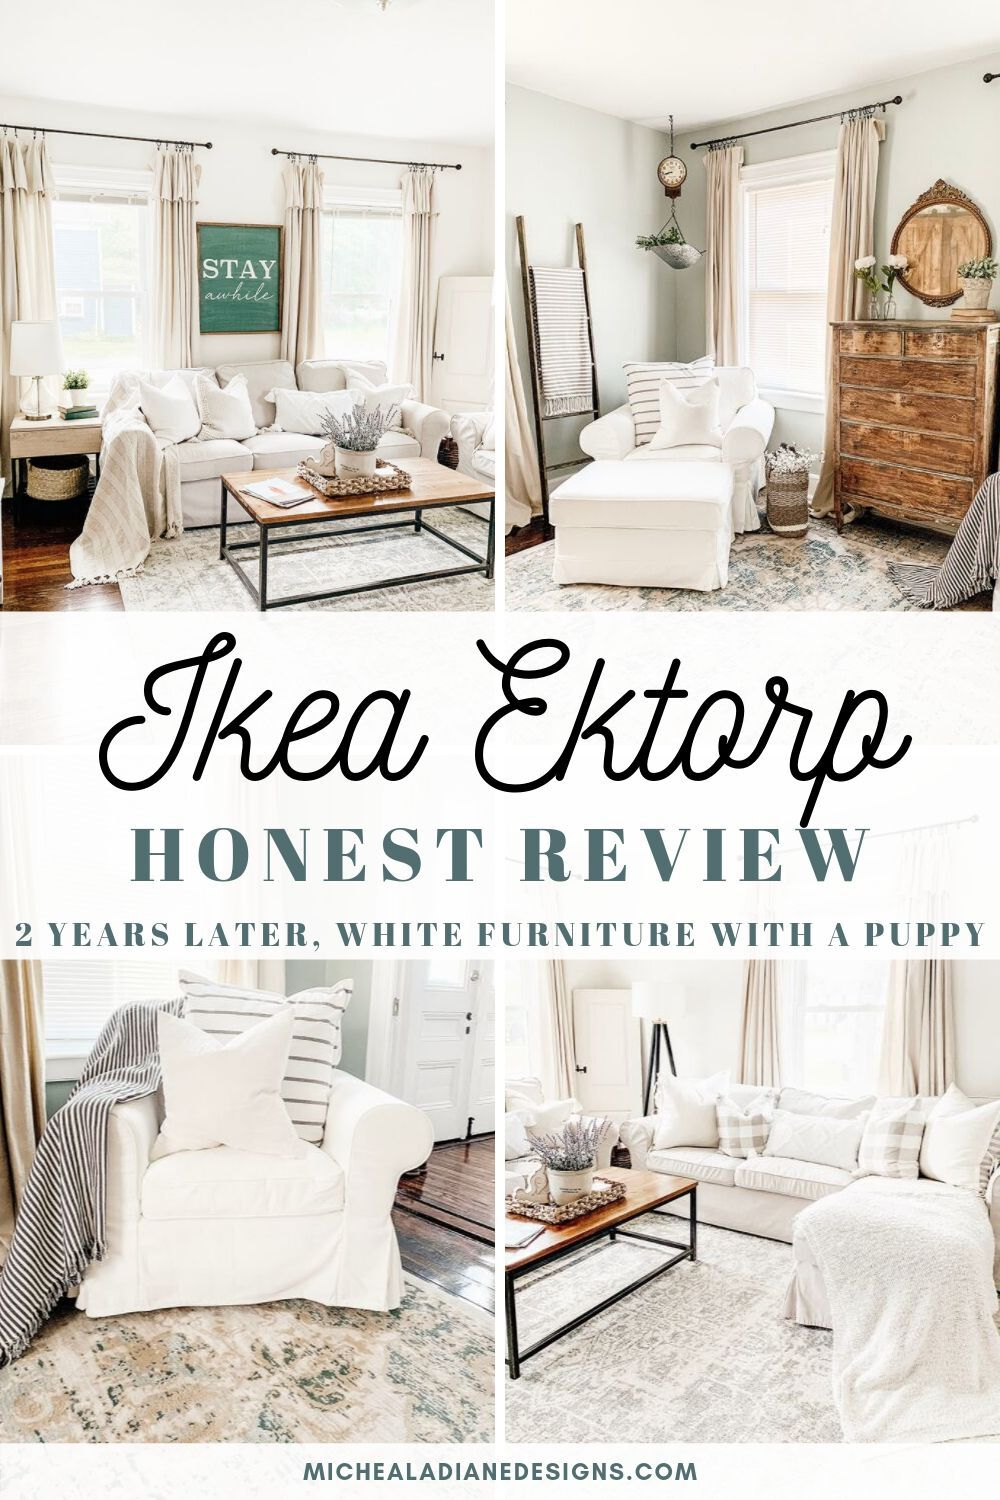 Ikea Ektorp Sofa Review - Micheala Diane Designs